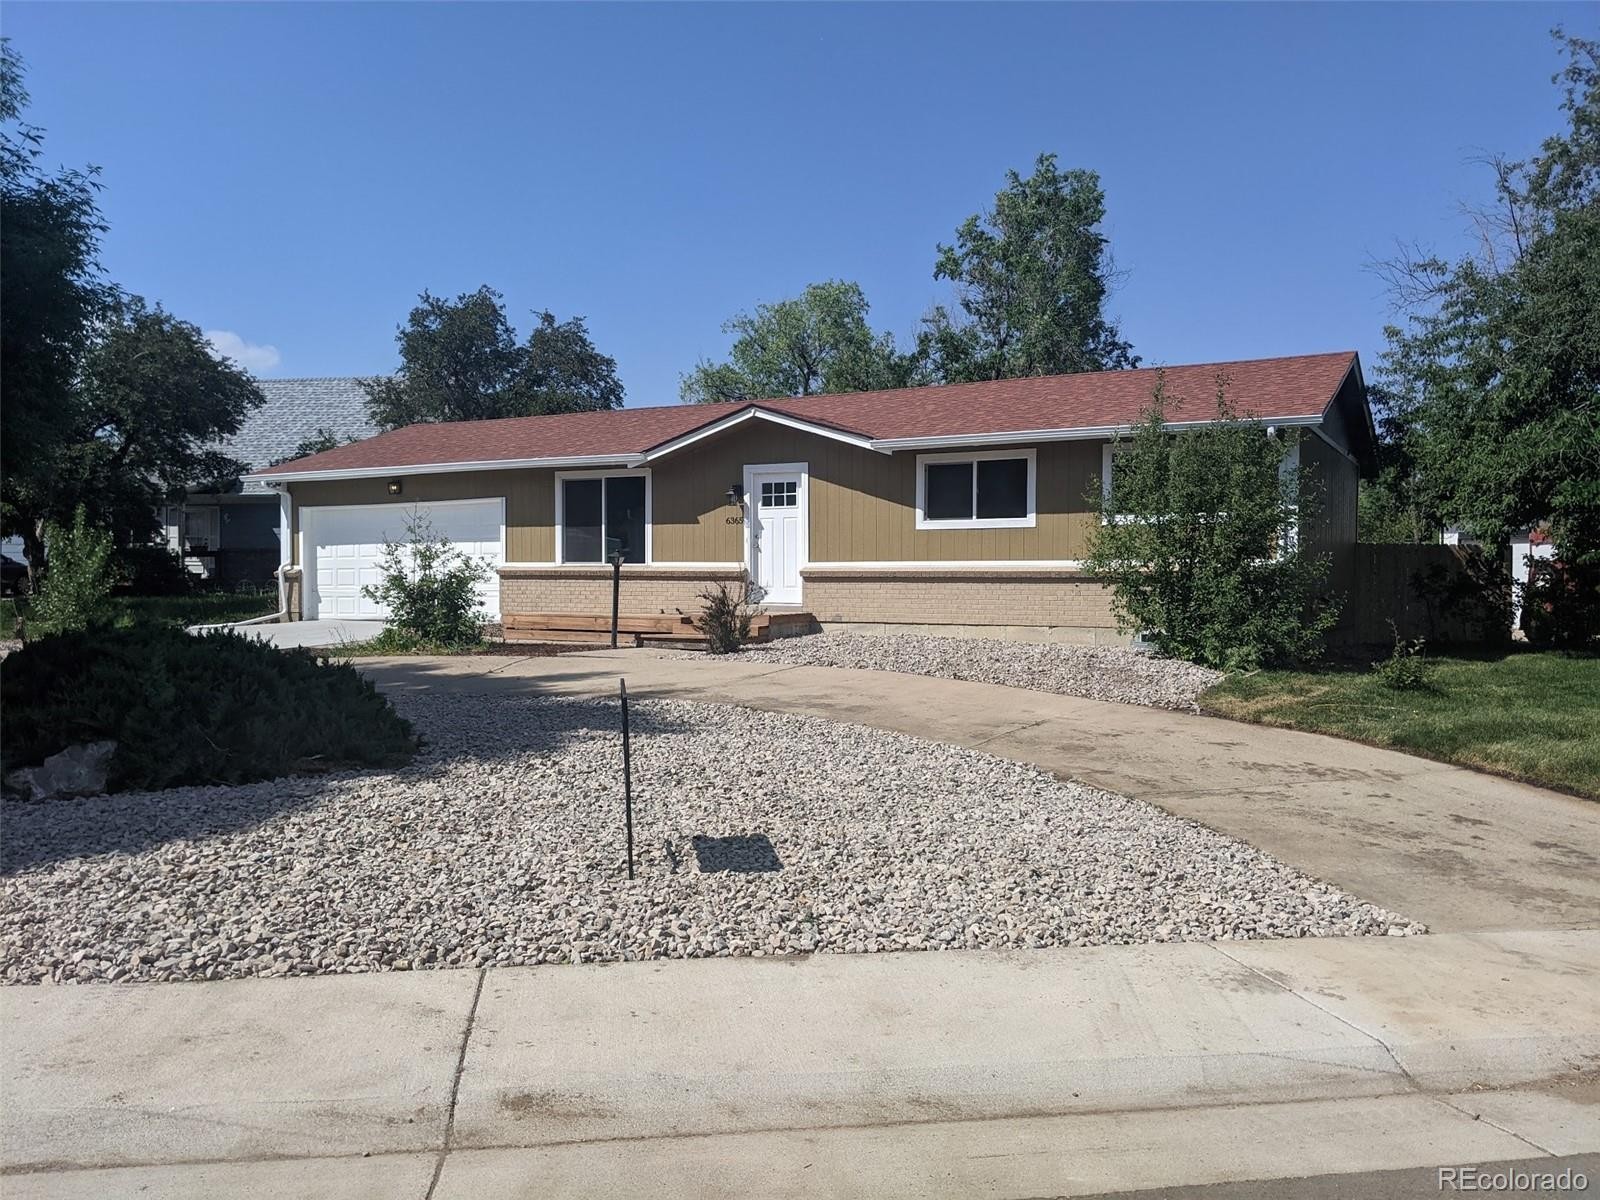 6365 W 78th Place, Arvada, CO 80003 - #: 6684978